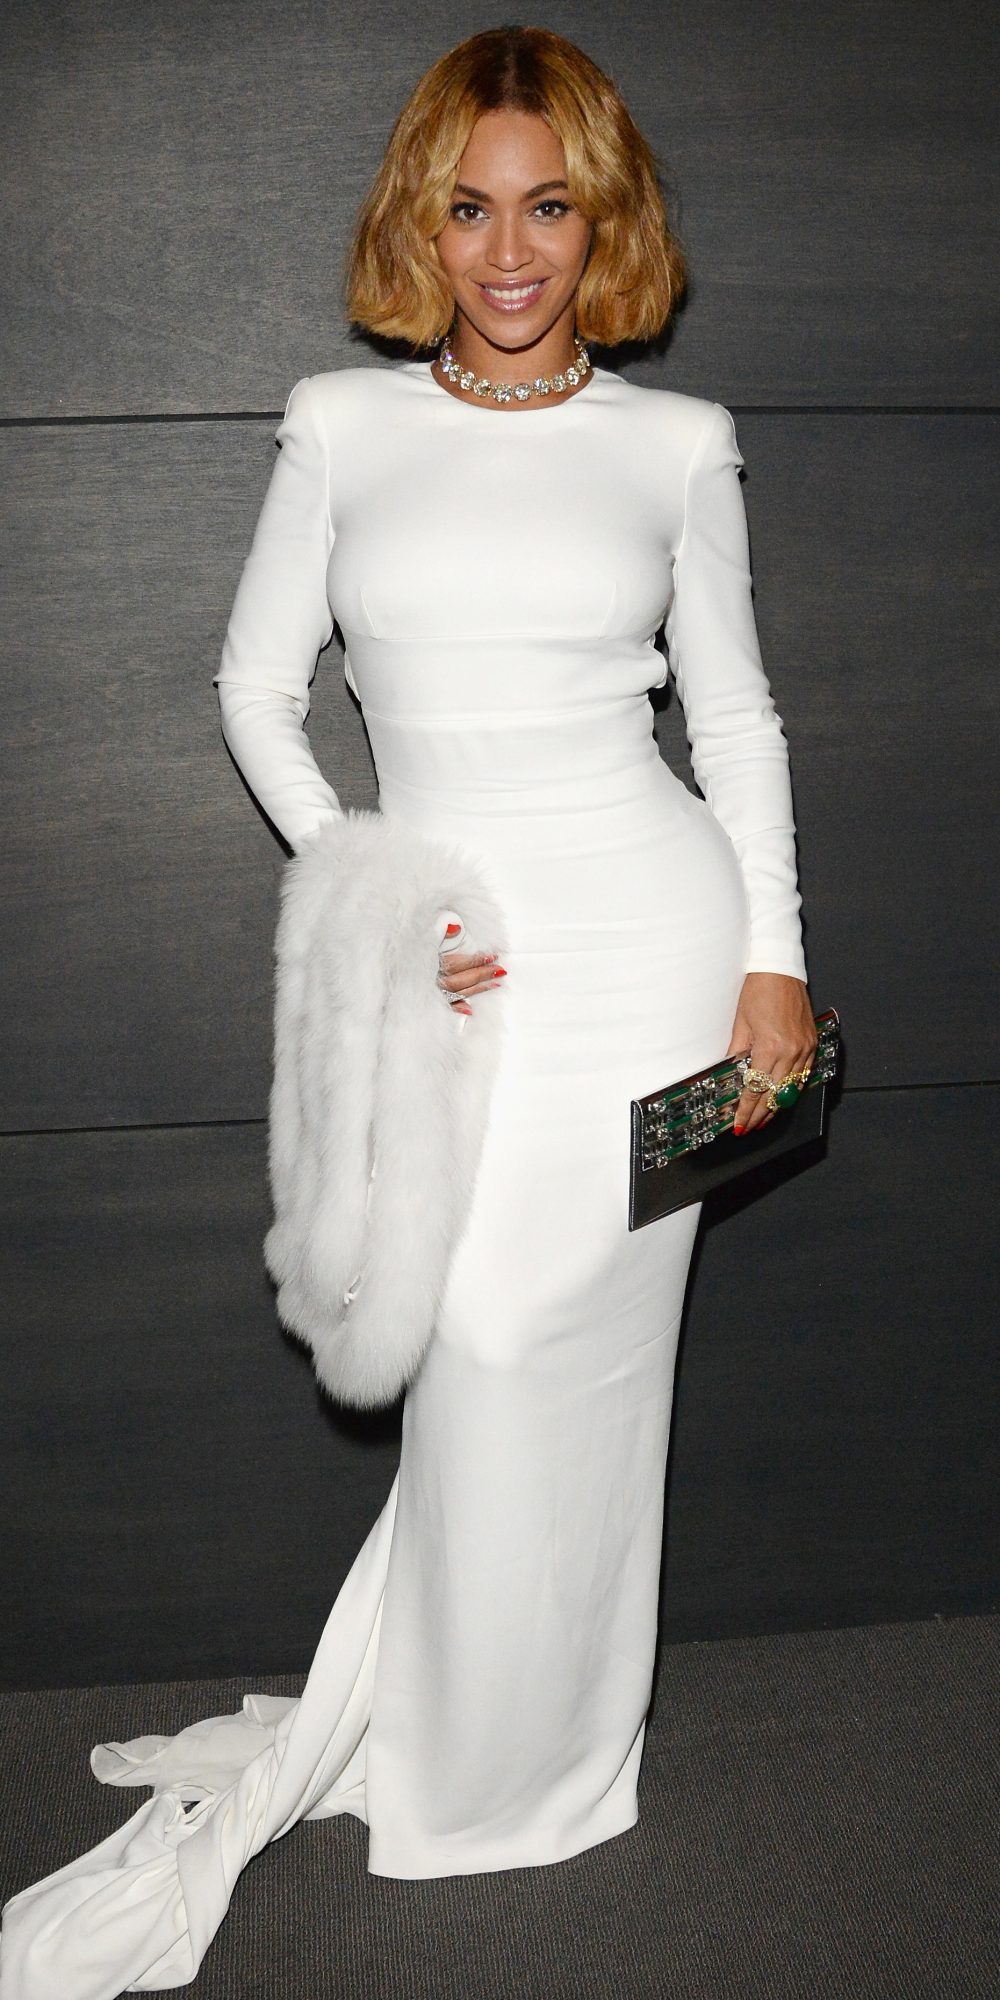 Beyonce attends the 2015 Vanity Fair Oscar Party